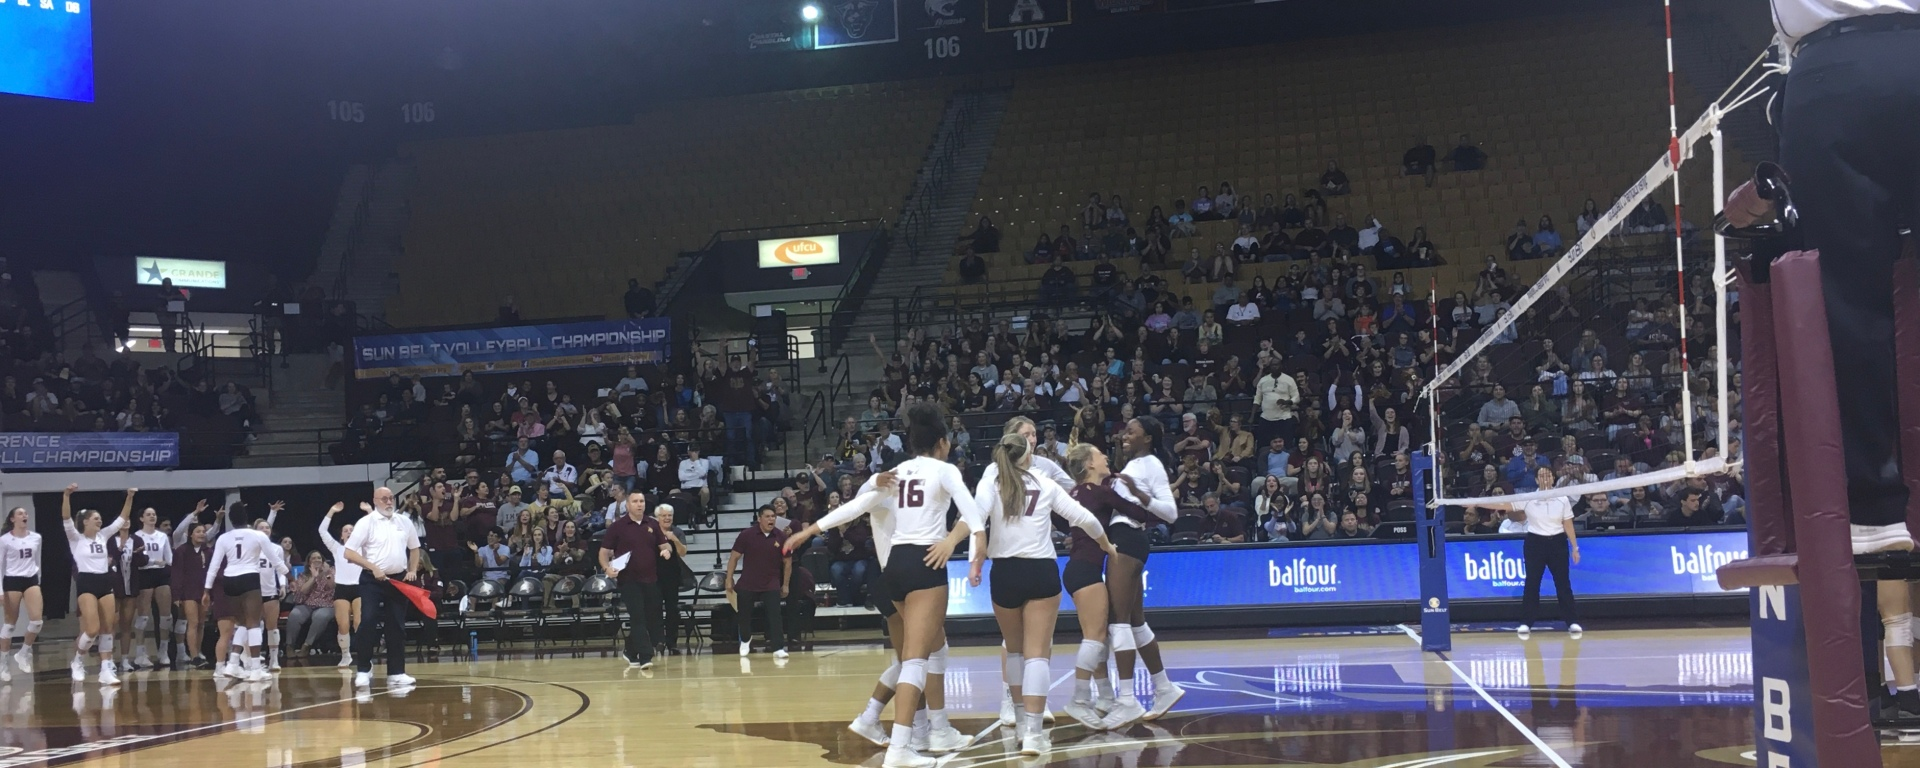 A group of girls in white jerseys gathering around in a circle to celebrate the point they just earned. One girl is being lifted up in a hug by another, this one is in a maroon jersey, to celebrate her successful block of the ball.